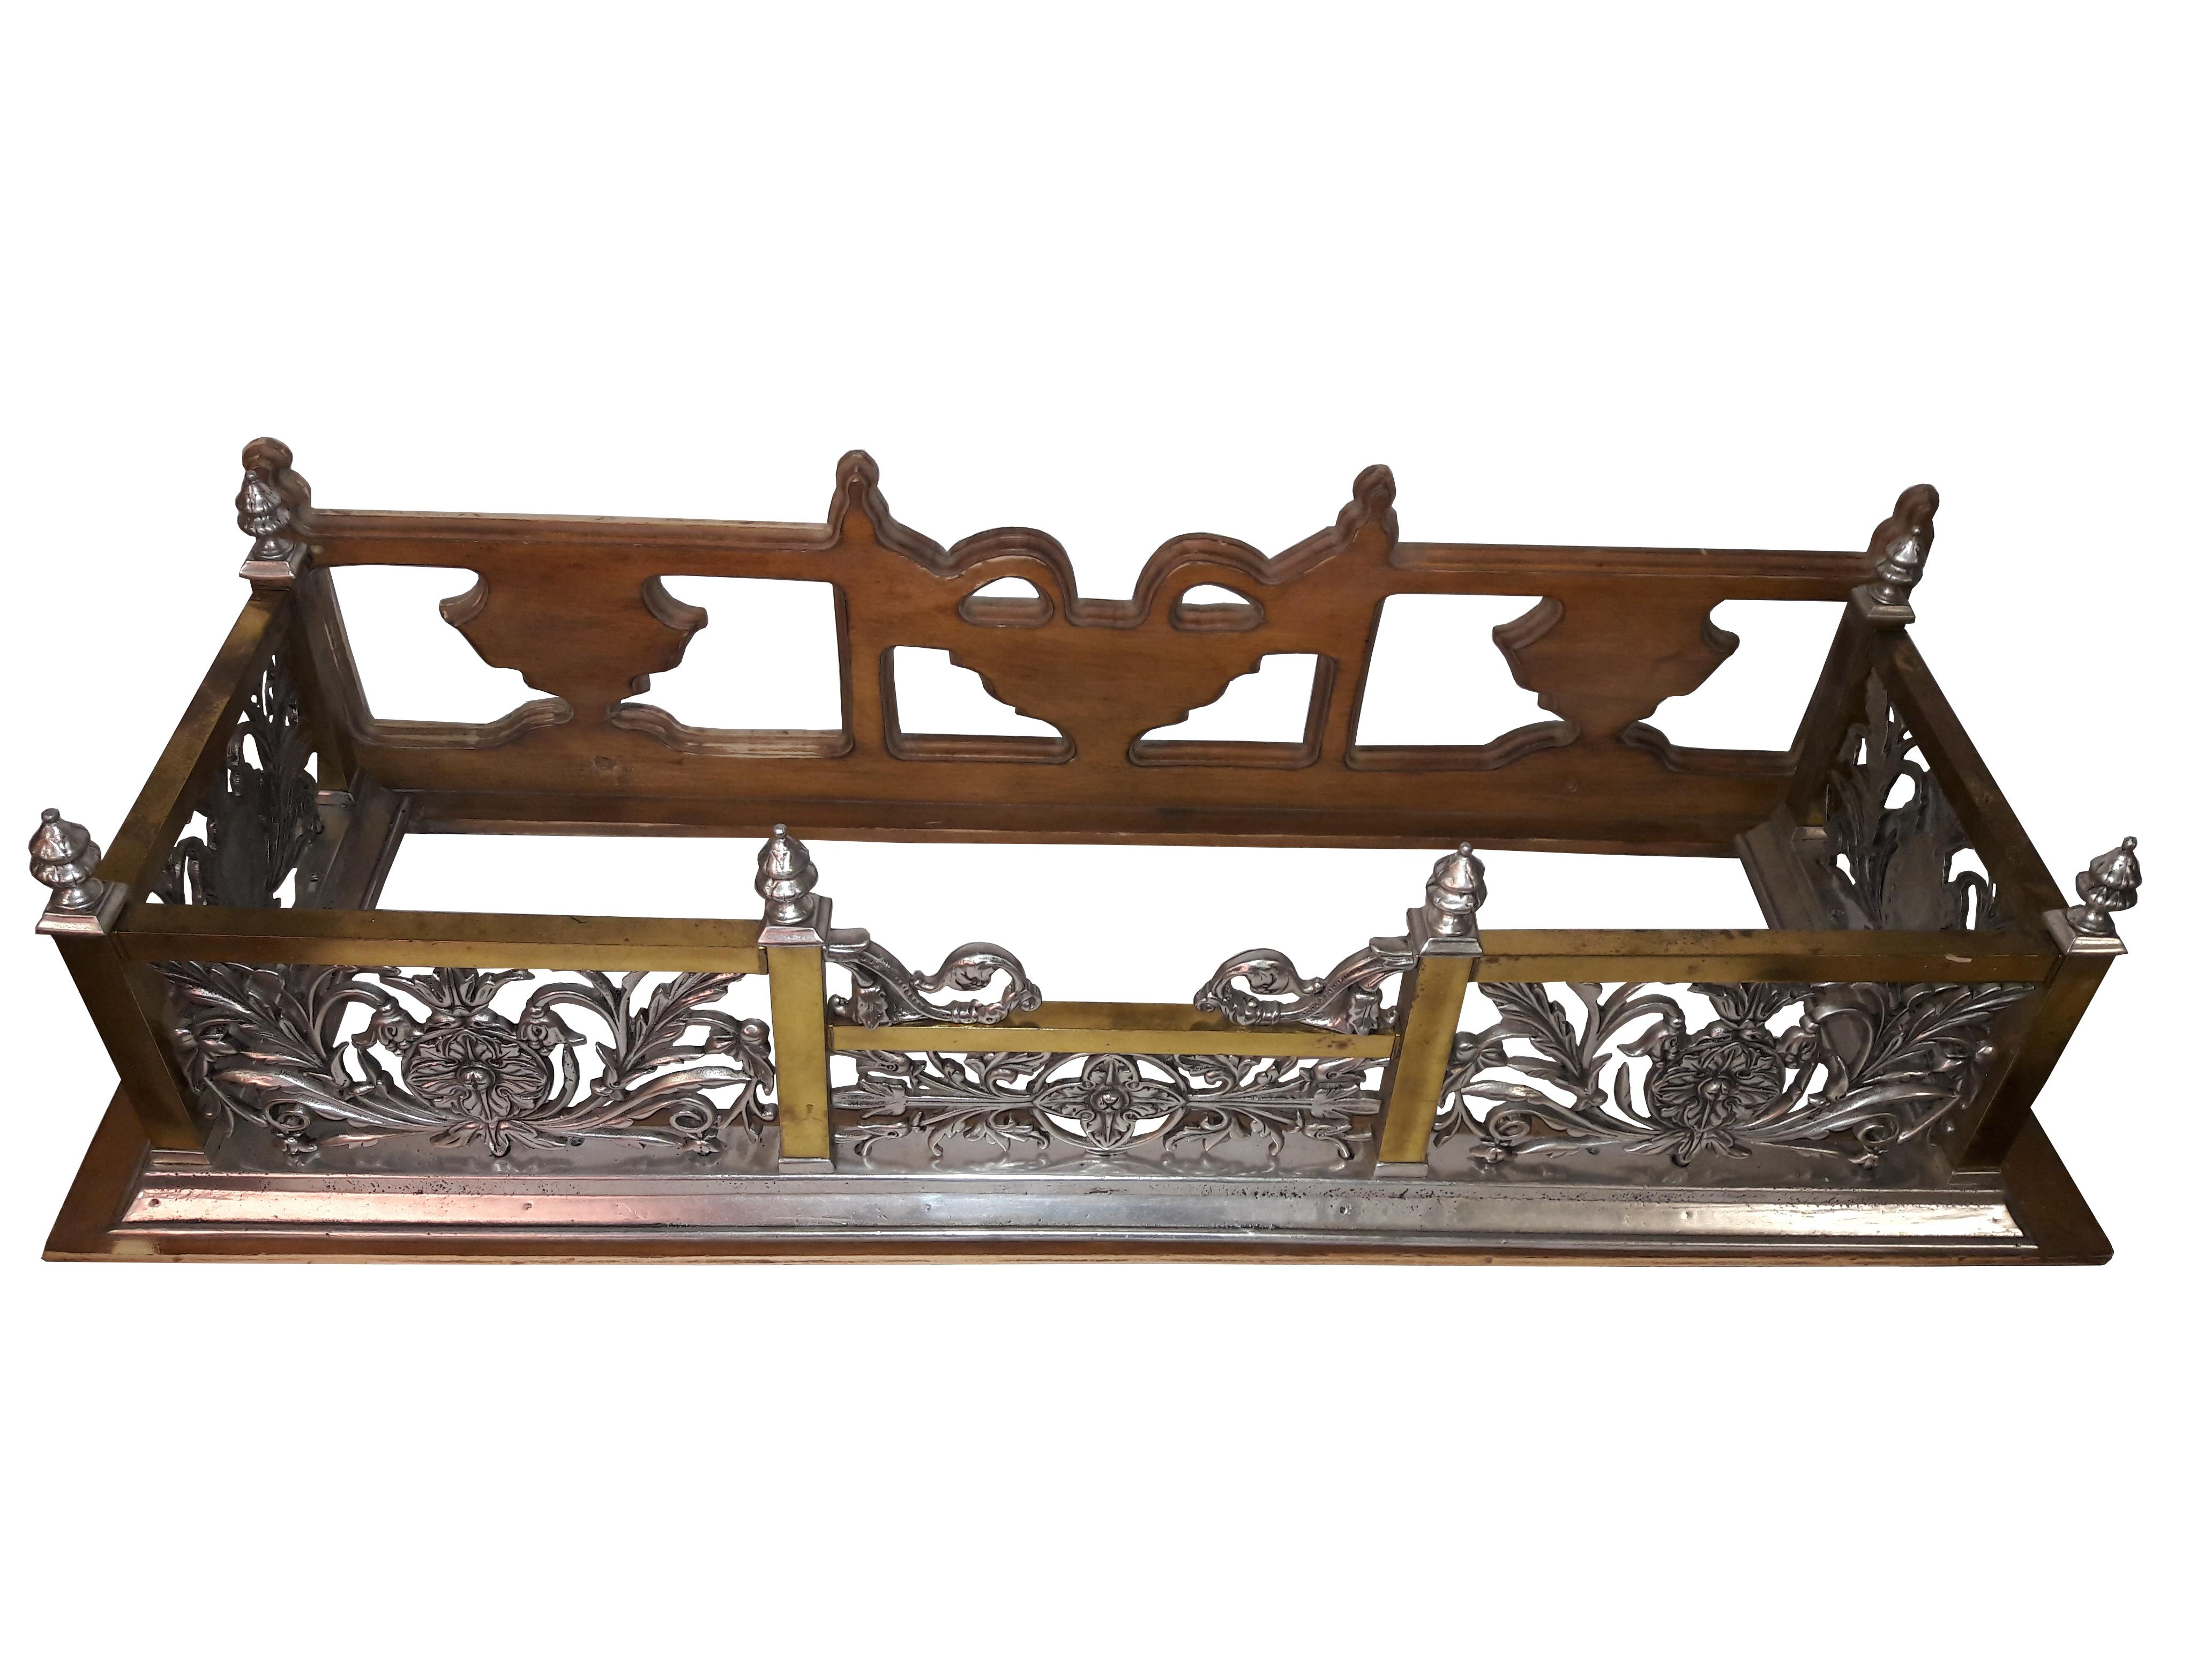 Art Nouveau Style Fireplace Surround Bench Fender Architectural Wall Shelf  For Sale In Philadelphia   Image